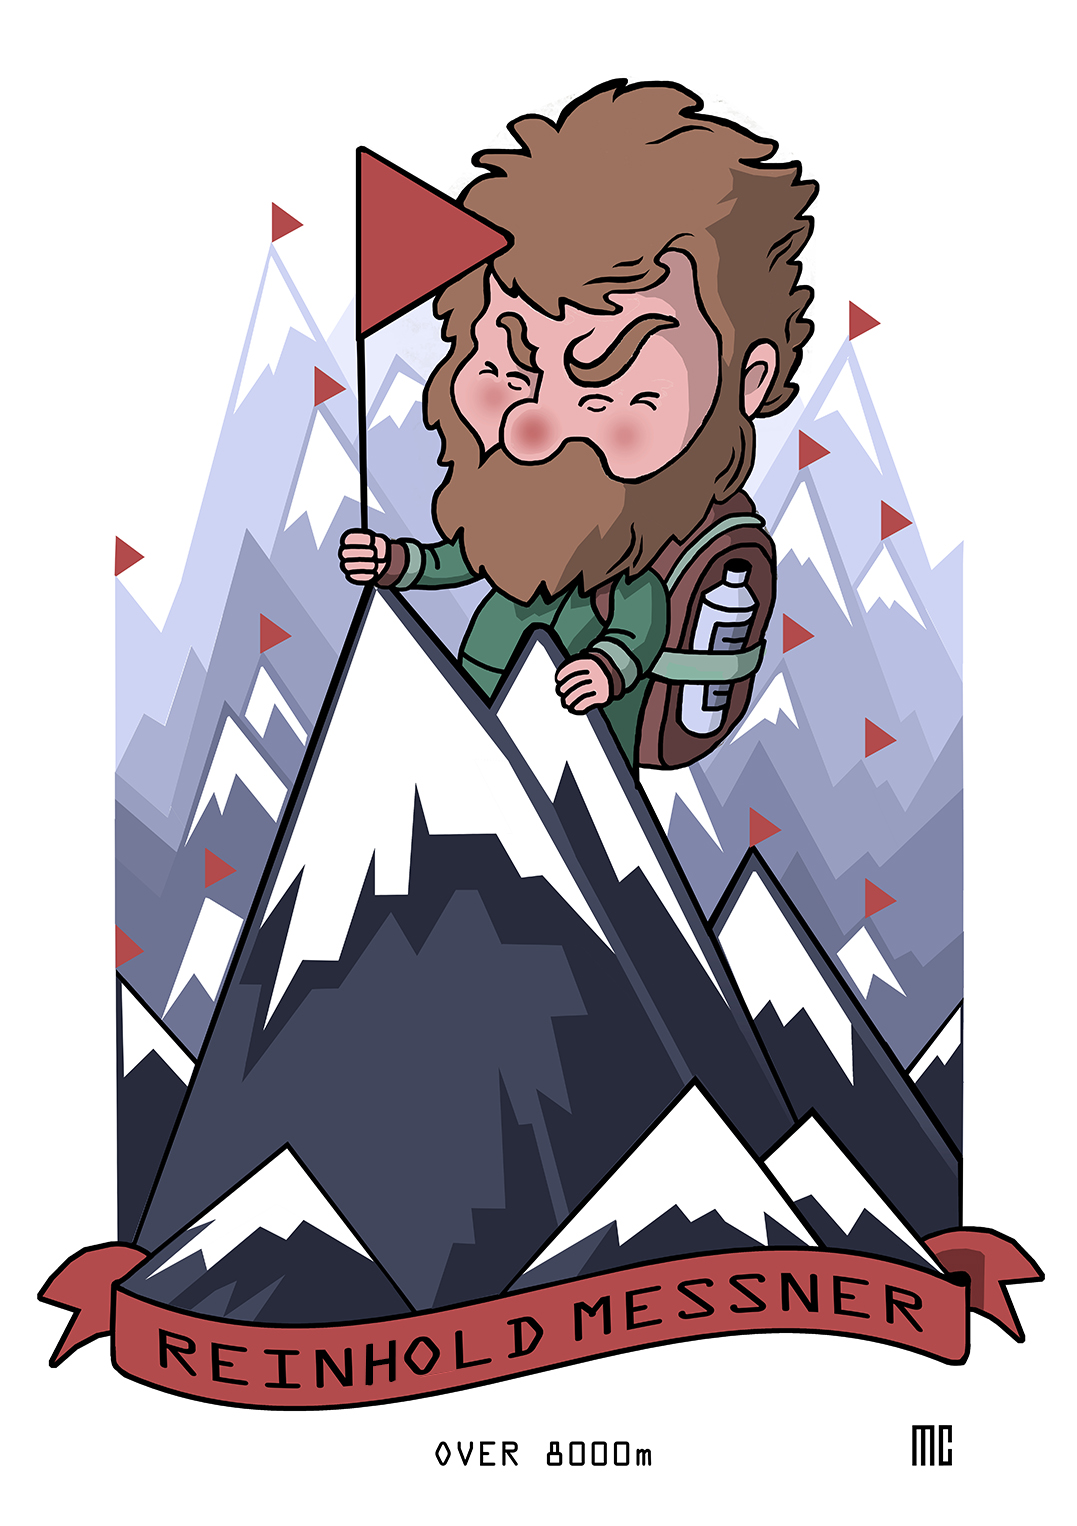 Reinhold Messner Alpi First Man Mountaintop Illustration.